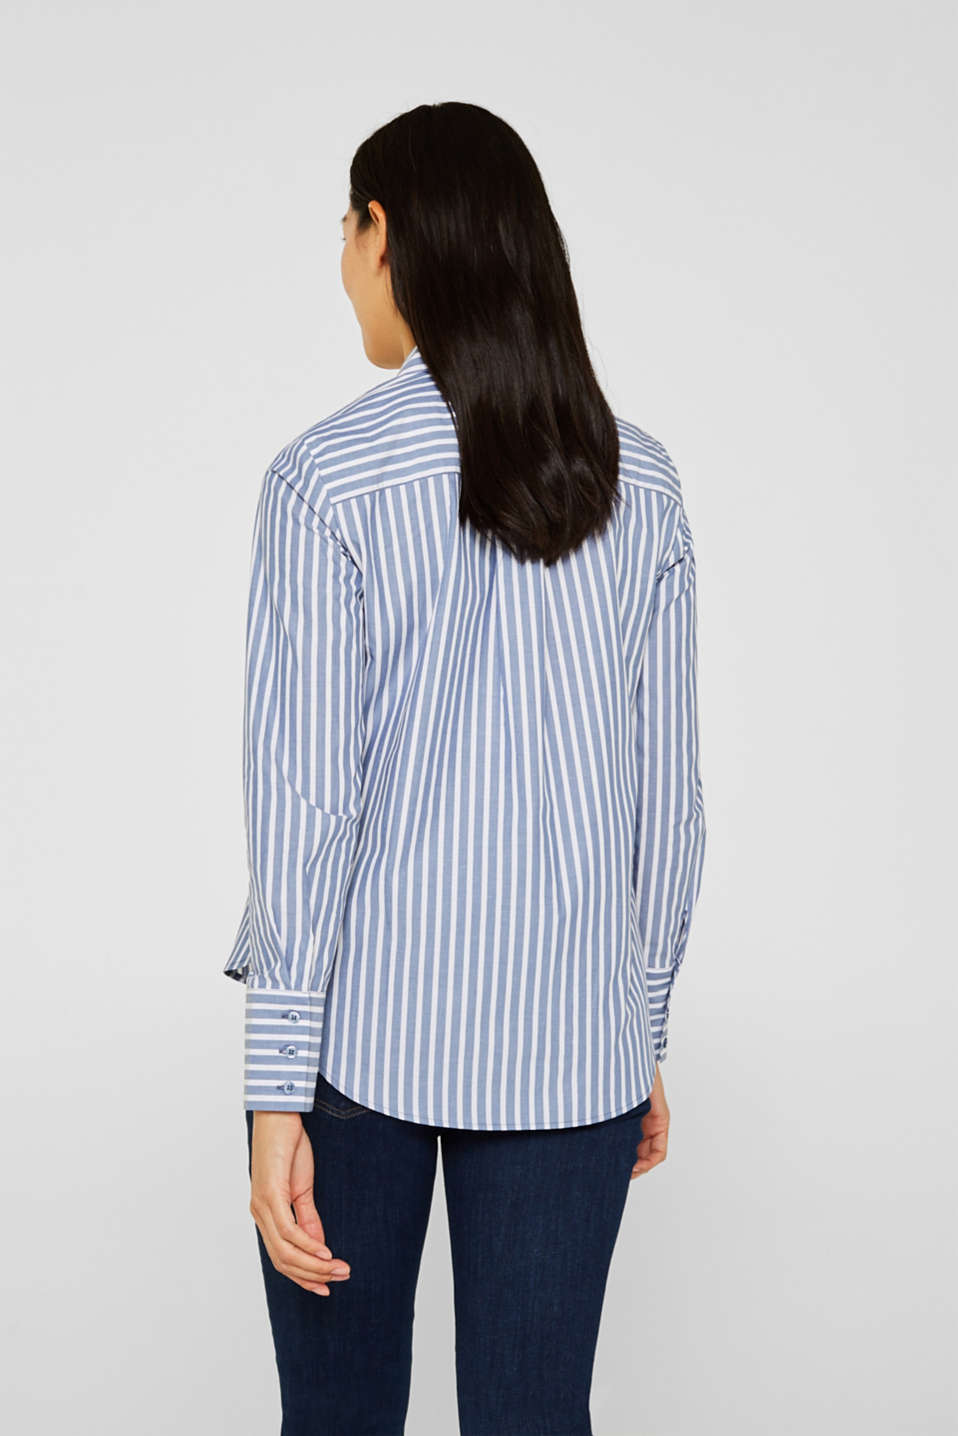 Blouse with stripes, 100% cotton, BLUE, detail image number 3